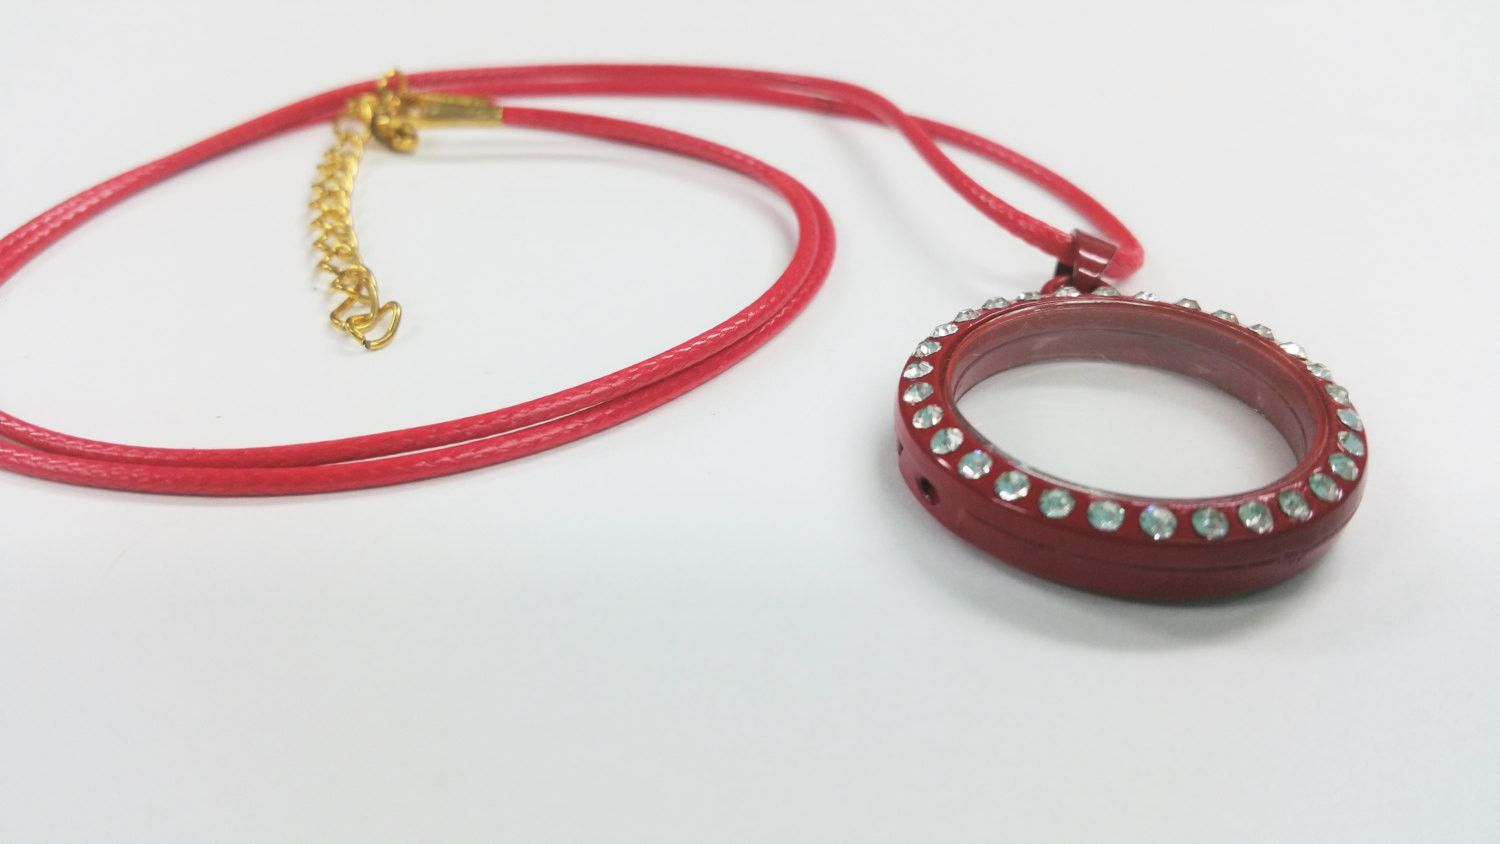 1 Cord Necklace - with 30mm Red Rhinestone Magnetic Floating Locket Pendant FL0043